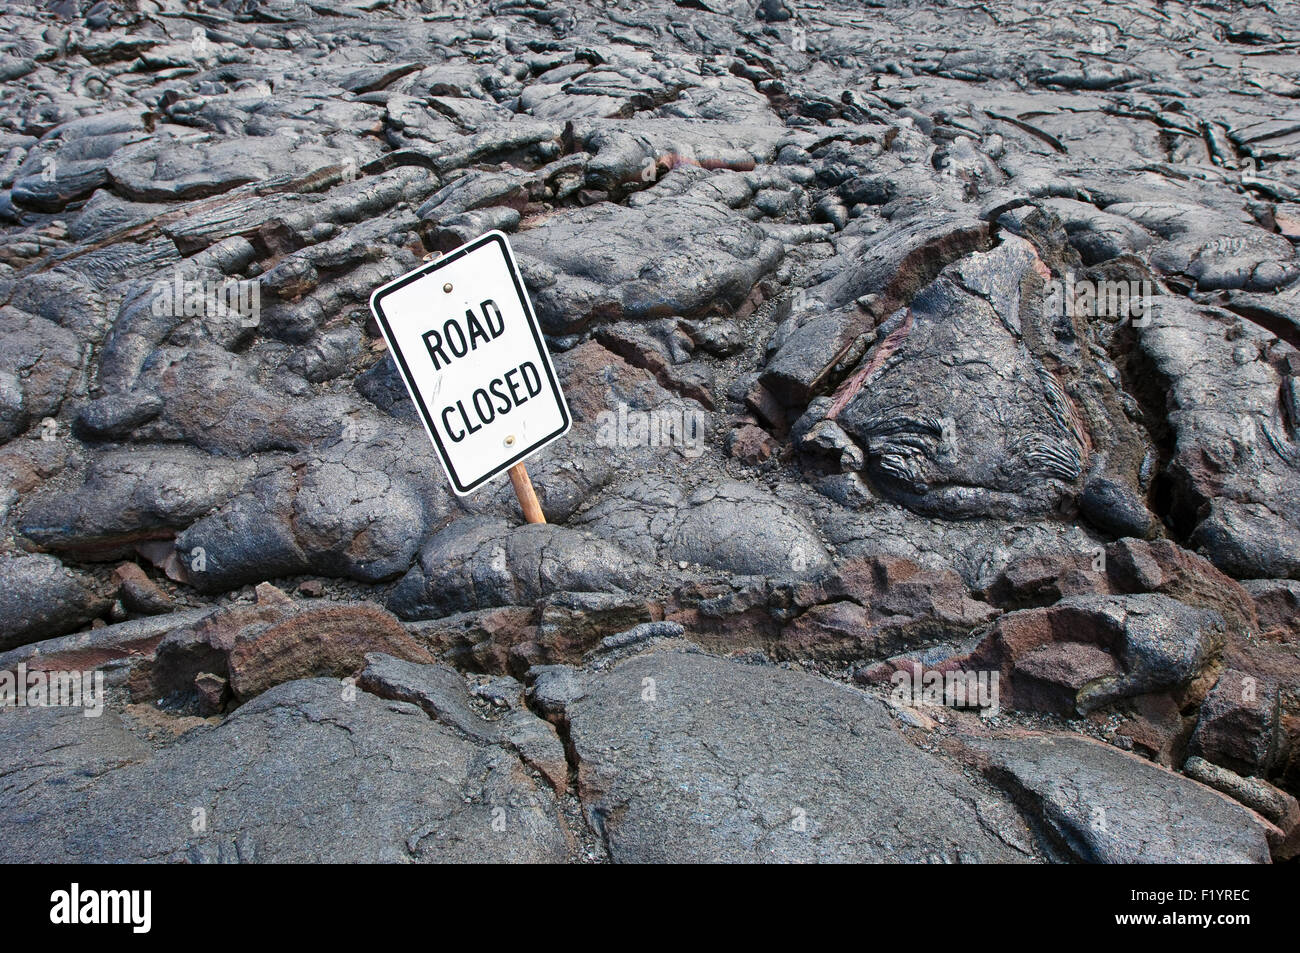 Lava flow and road sign on Chain of Craters Road, Big Island, Hawaii Stock Photo